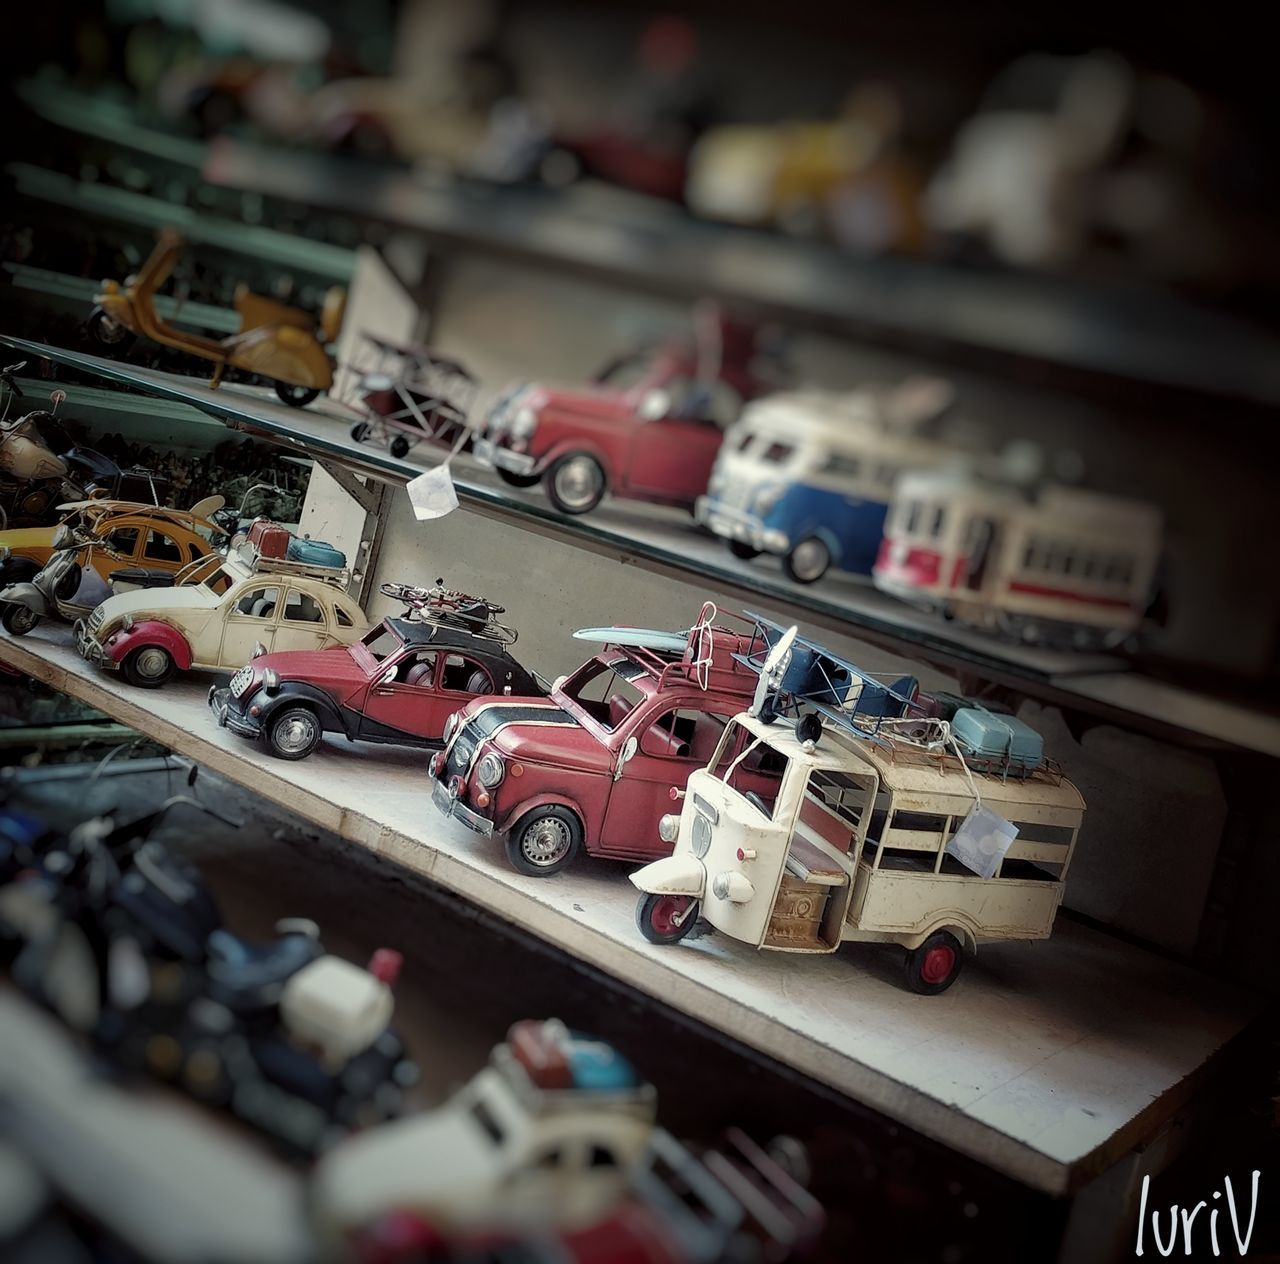 Retail  No People Choice Day City Naples Italy Naples Is Wonderful Relaxing Nexus 6p Photography Naples, Italy Scenics Cars Models Streetphotography Street Photography Modellini Miniatura Miniature Effect